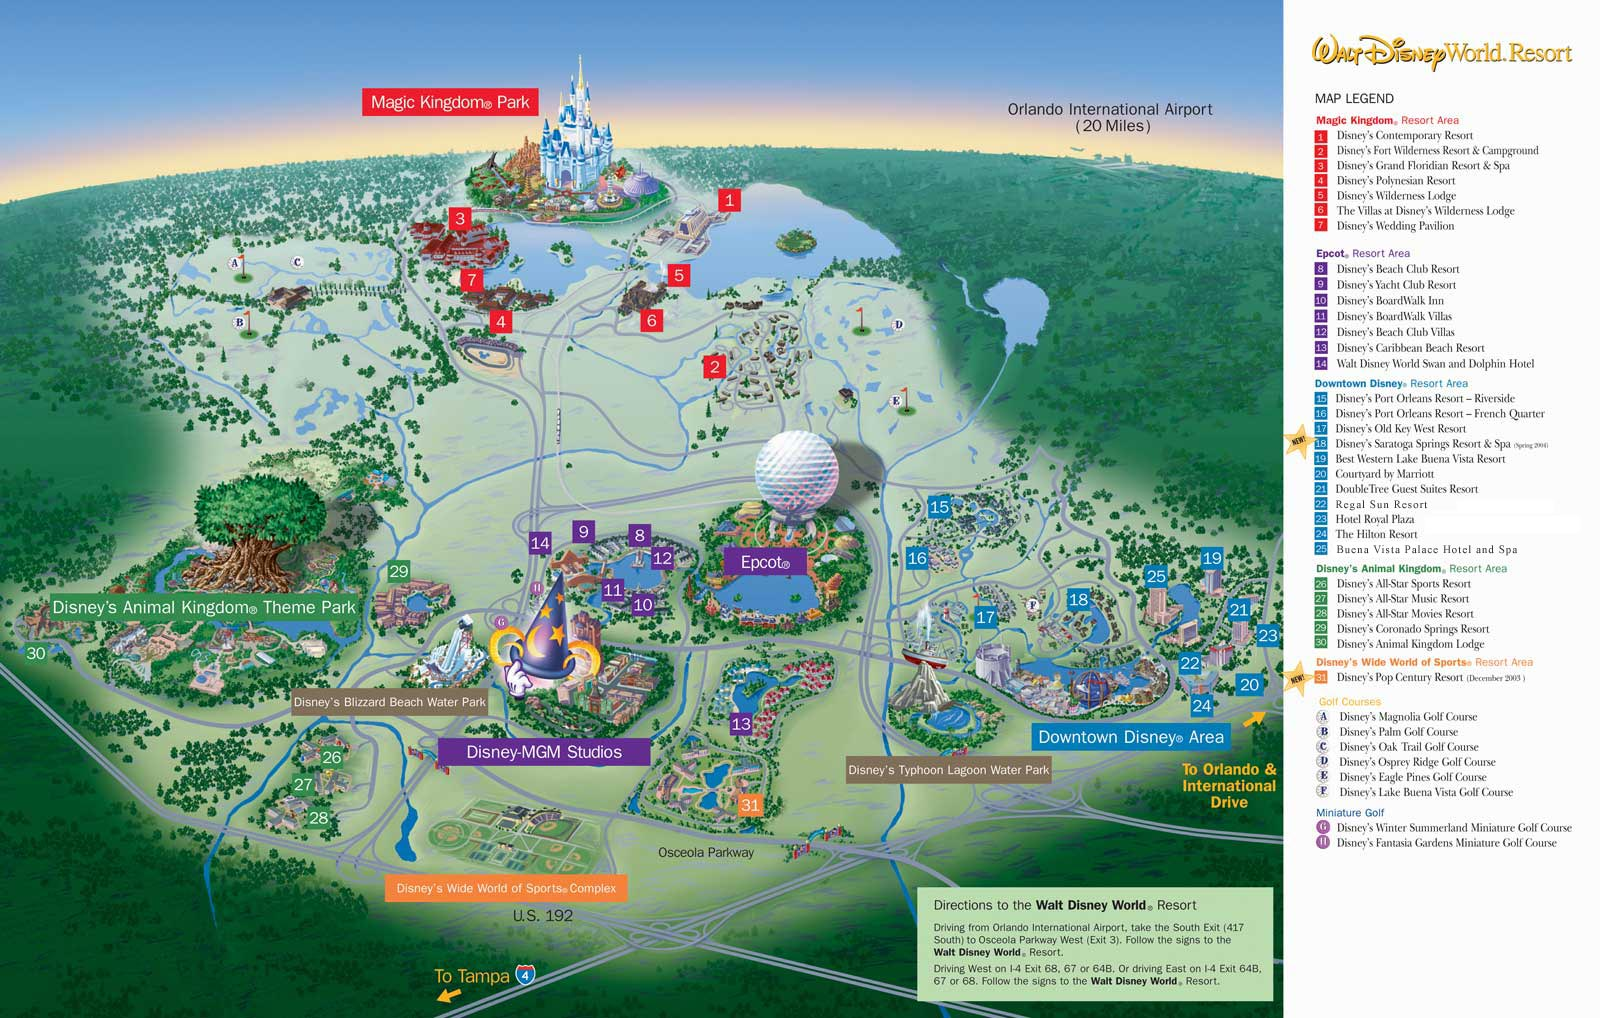 map of walt disney world resort wdwinfo